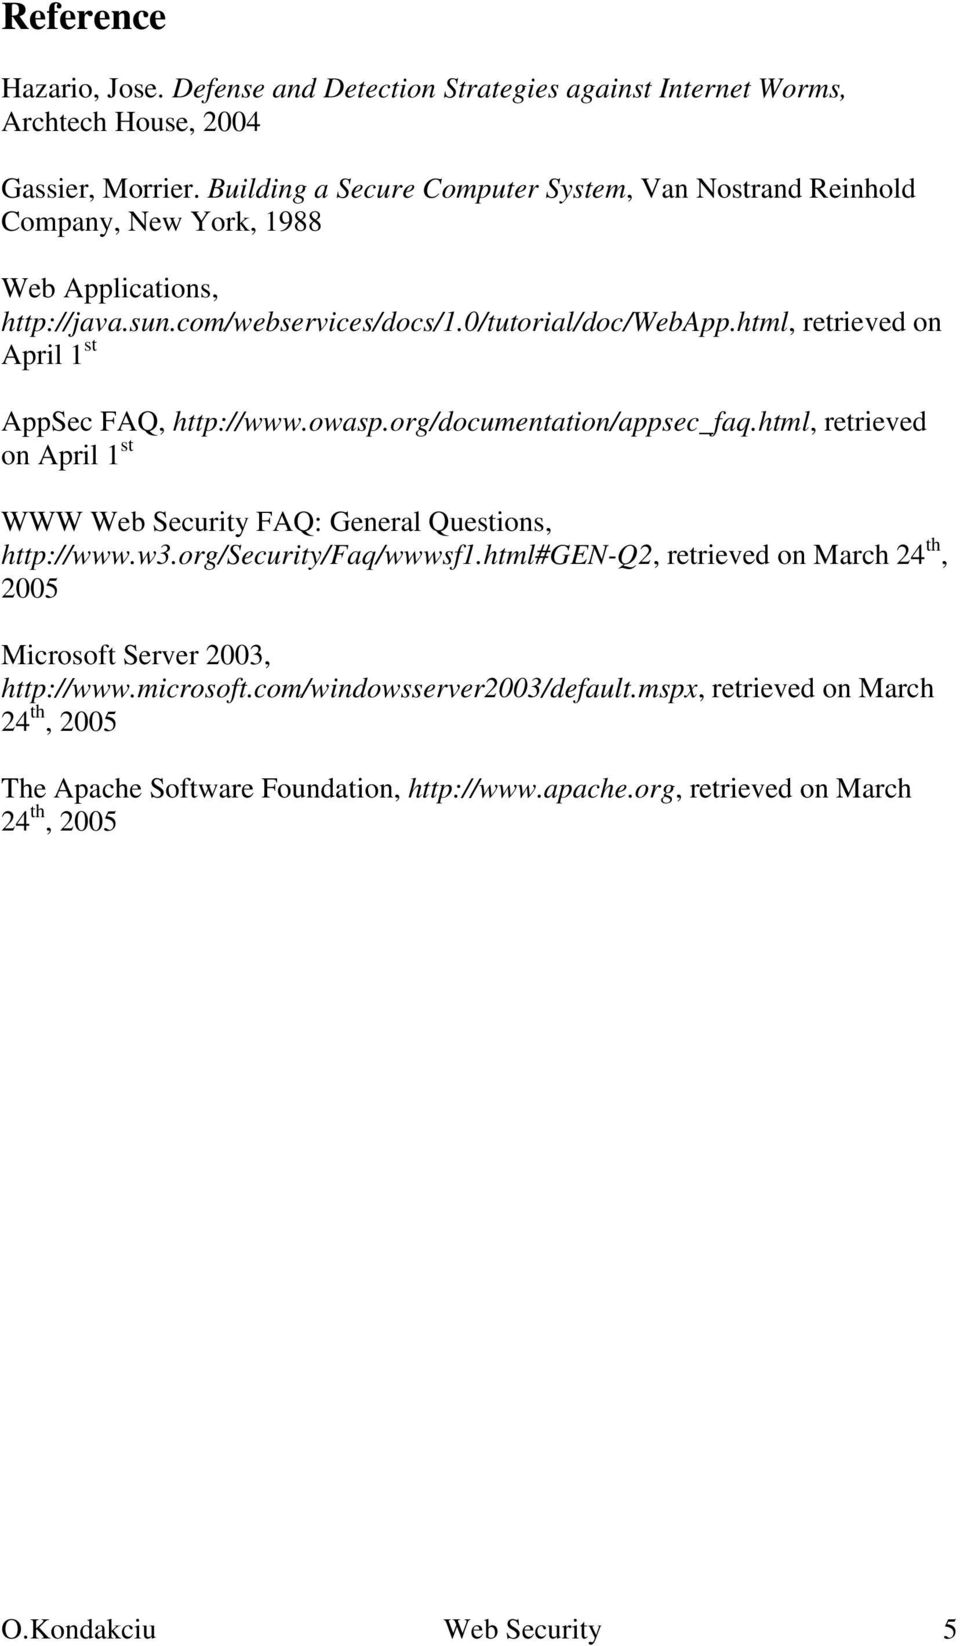 html, retrieved on April 1 st AppSec FAQ, http://www.owasp.org/documentation/appsec_faq.html, retrieved on April 1 st WWW Web Security FAQ: General Questions, http://www.w3.